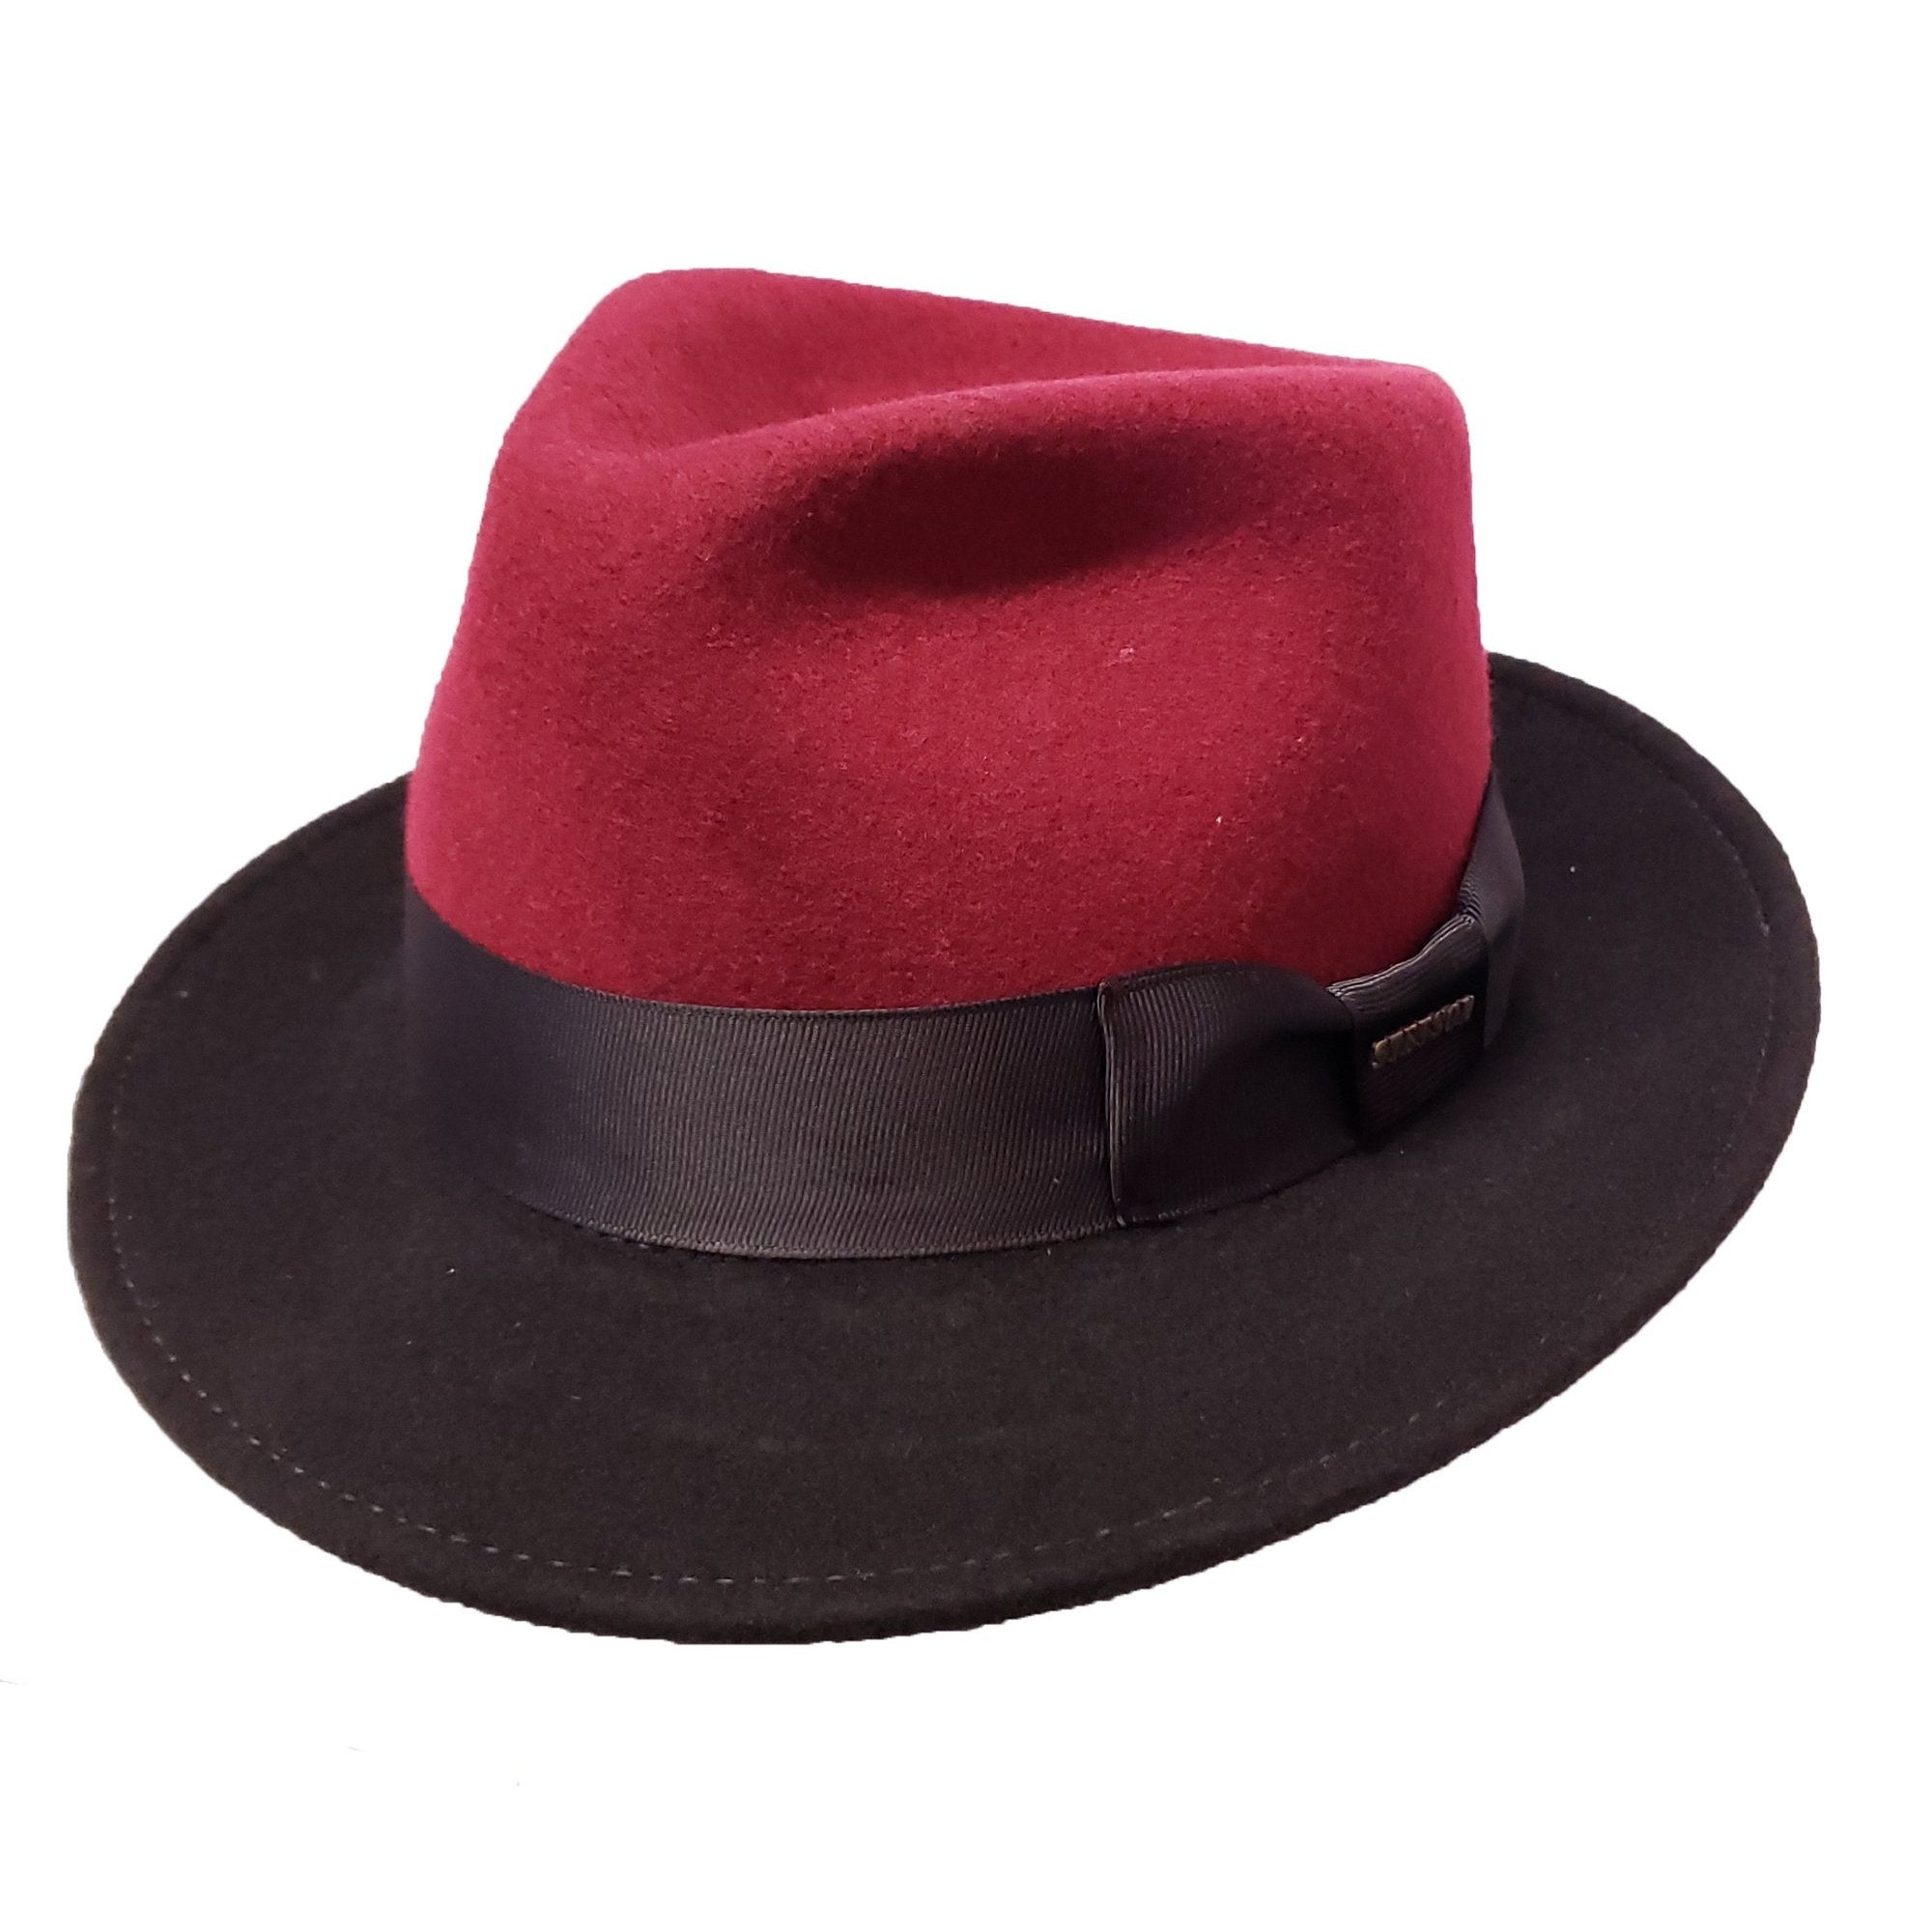 Stetson Duetoni Two-Tone Fedora - Burgundy / Black Hat - Dapperfam.com